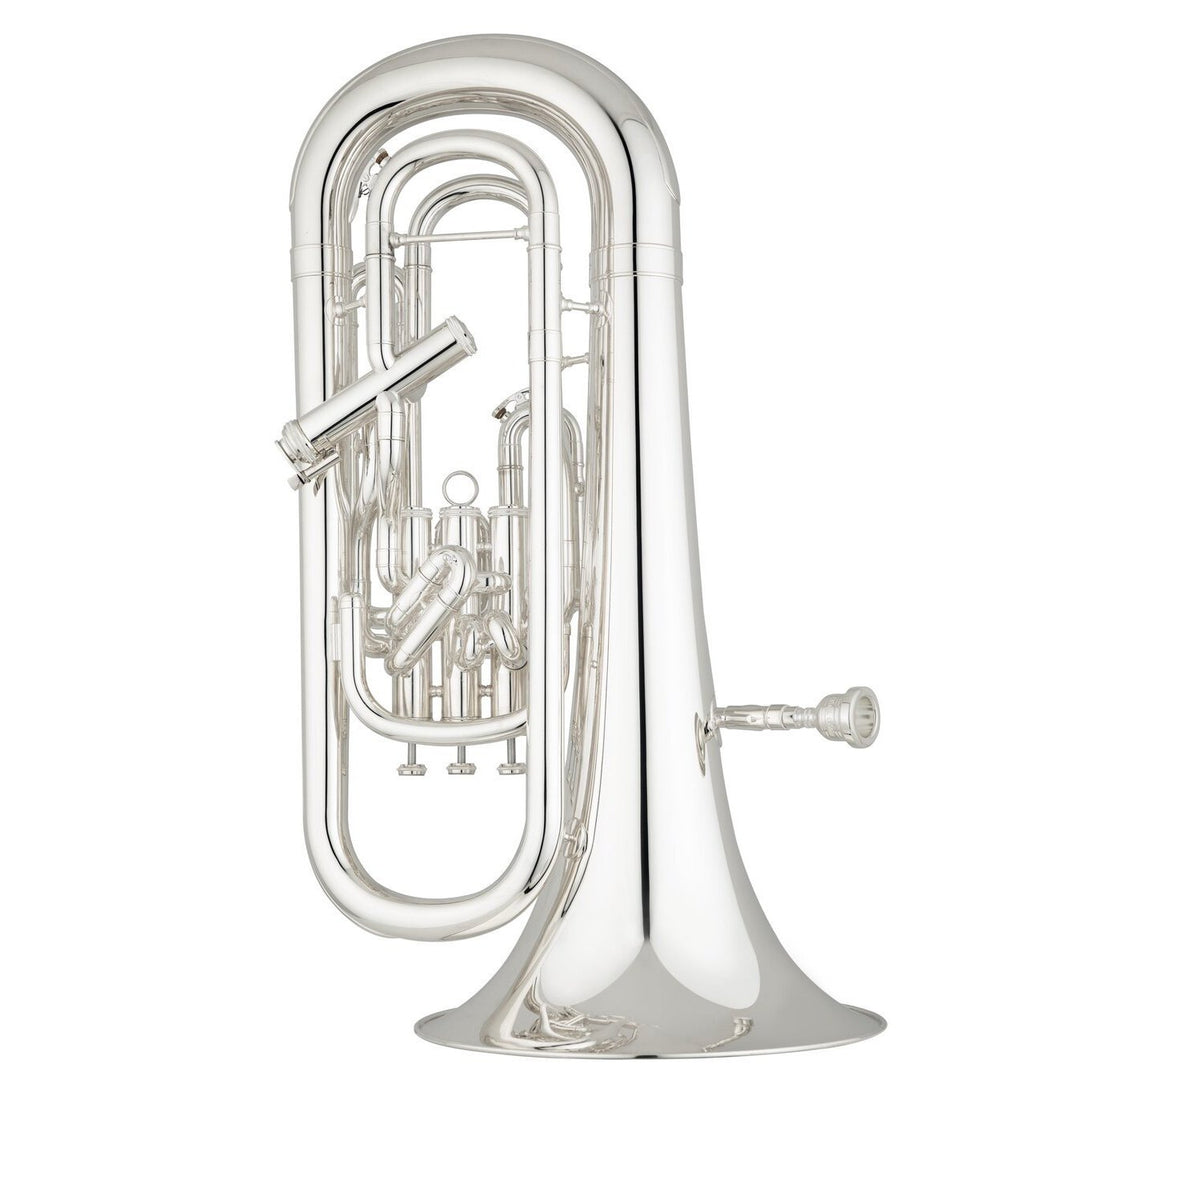 S.E. Shires - Q40S - Q Series Euphonium (Silver Plated)-Euphonium-S.E. Shires-Music Elements